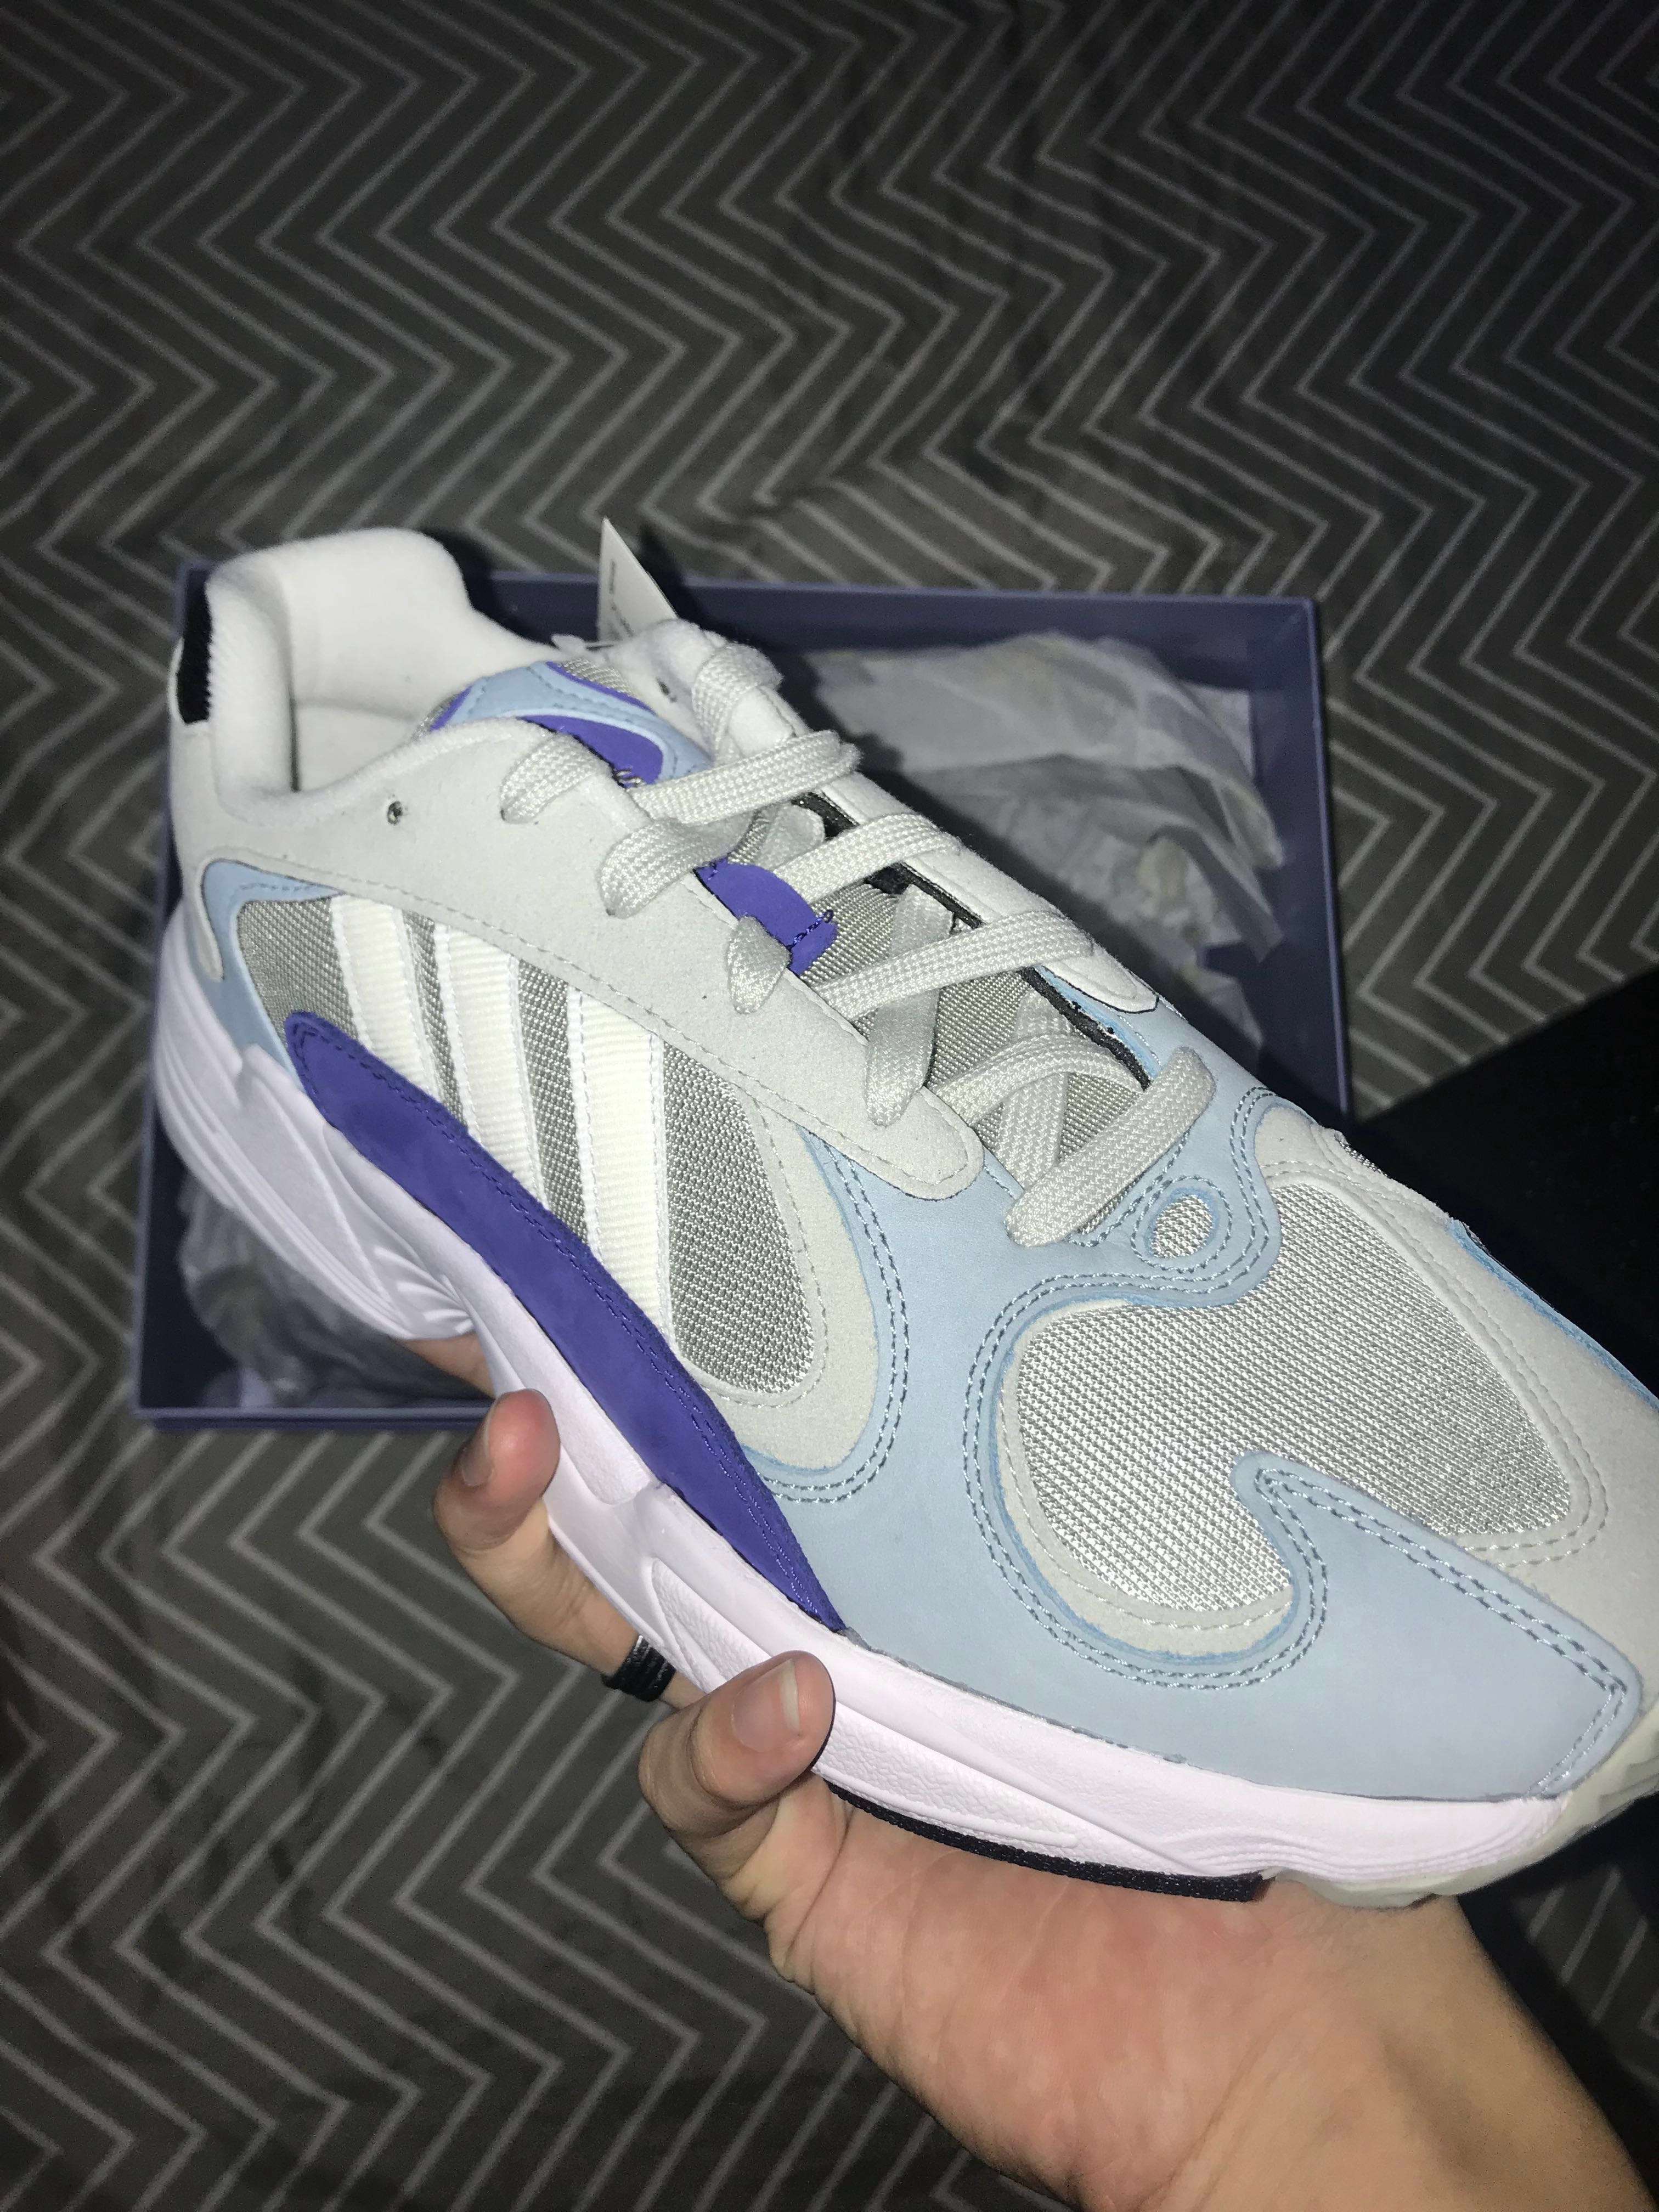 f4446bb005a END x adidas yung 1 atmosphere